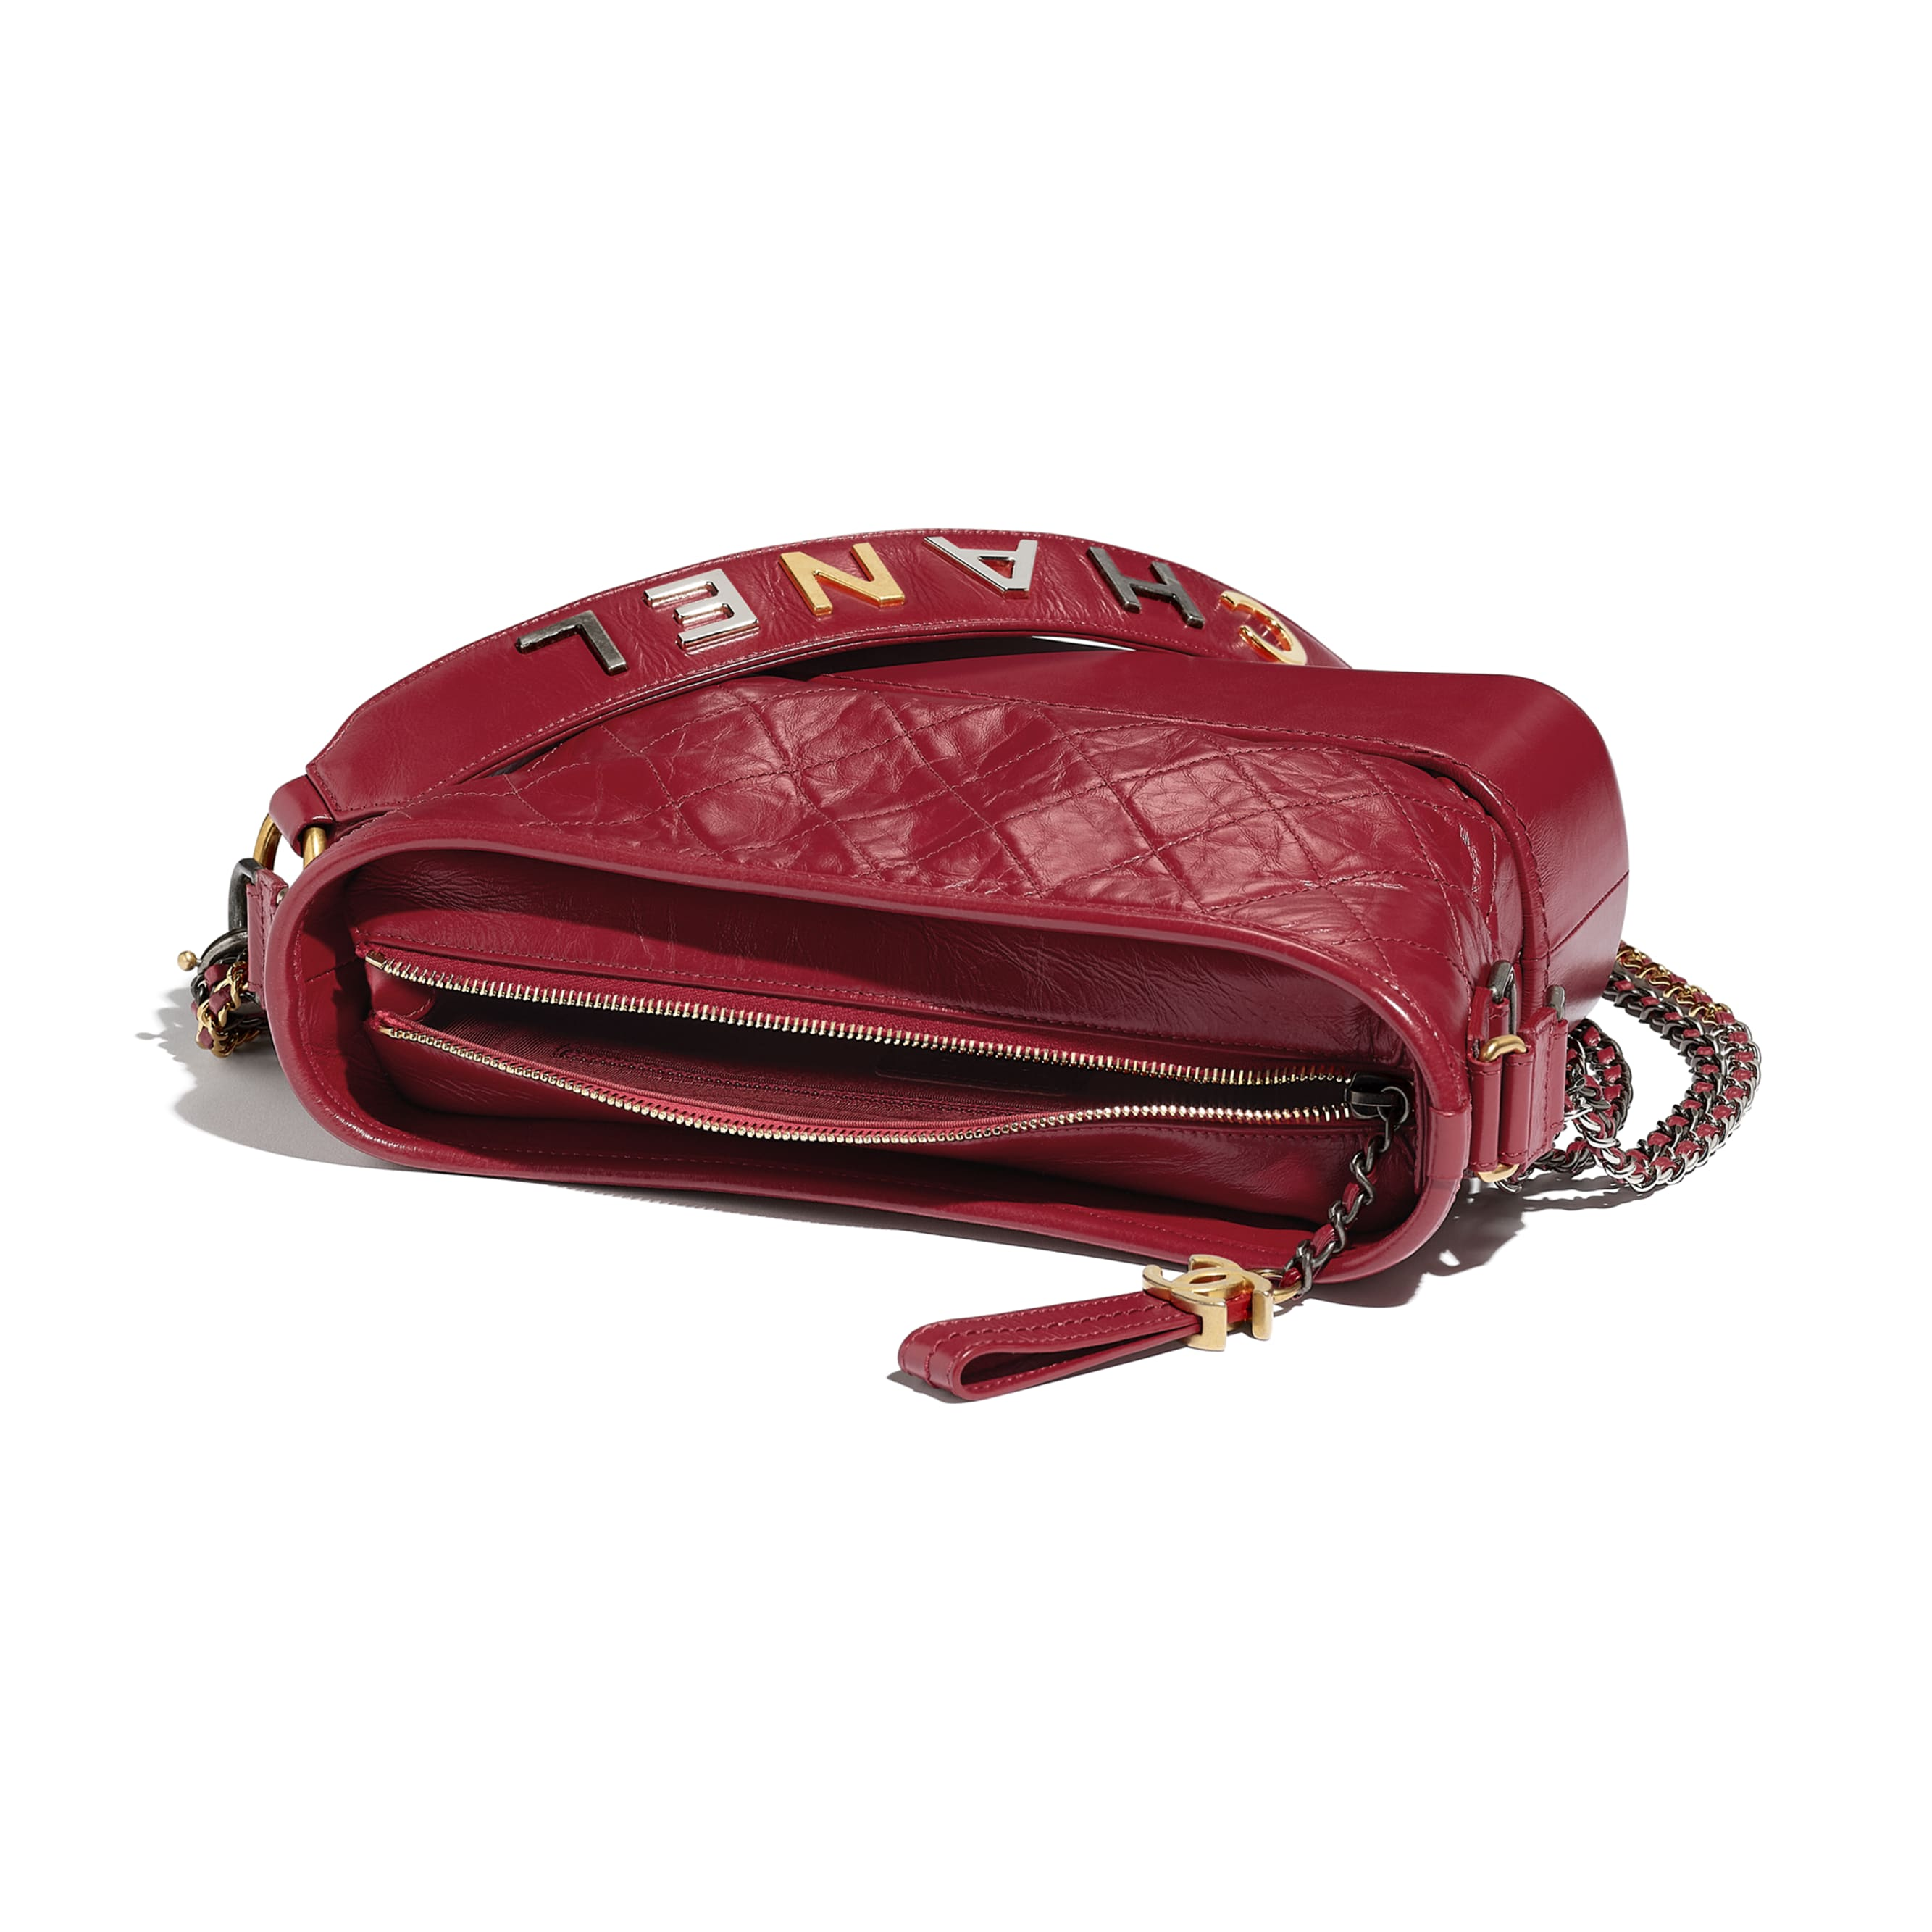 CHANEL'S GABRIELLE Hobo Handbag - Red - Aged Calfskin, Smooth Calfskin, Gold-Tone, Silver-Tone & Ruthenium-Finish Metal - CHANEL - Other view - see standard sized version